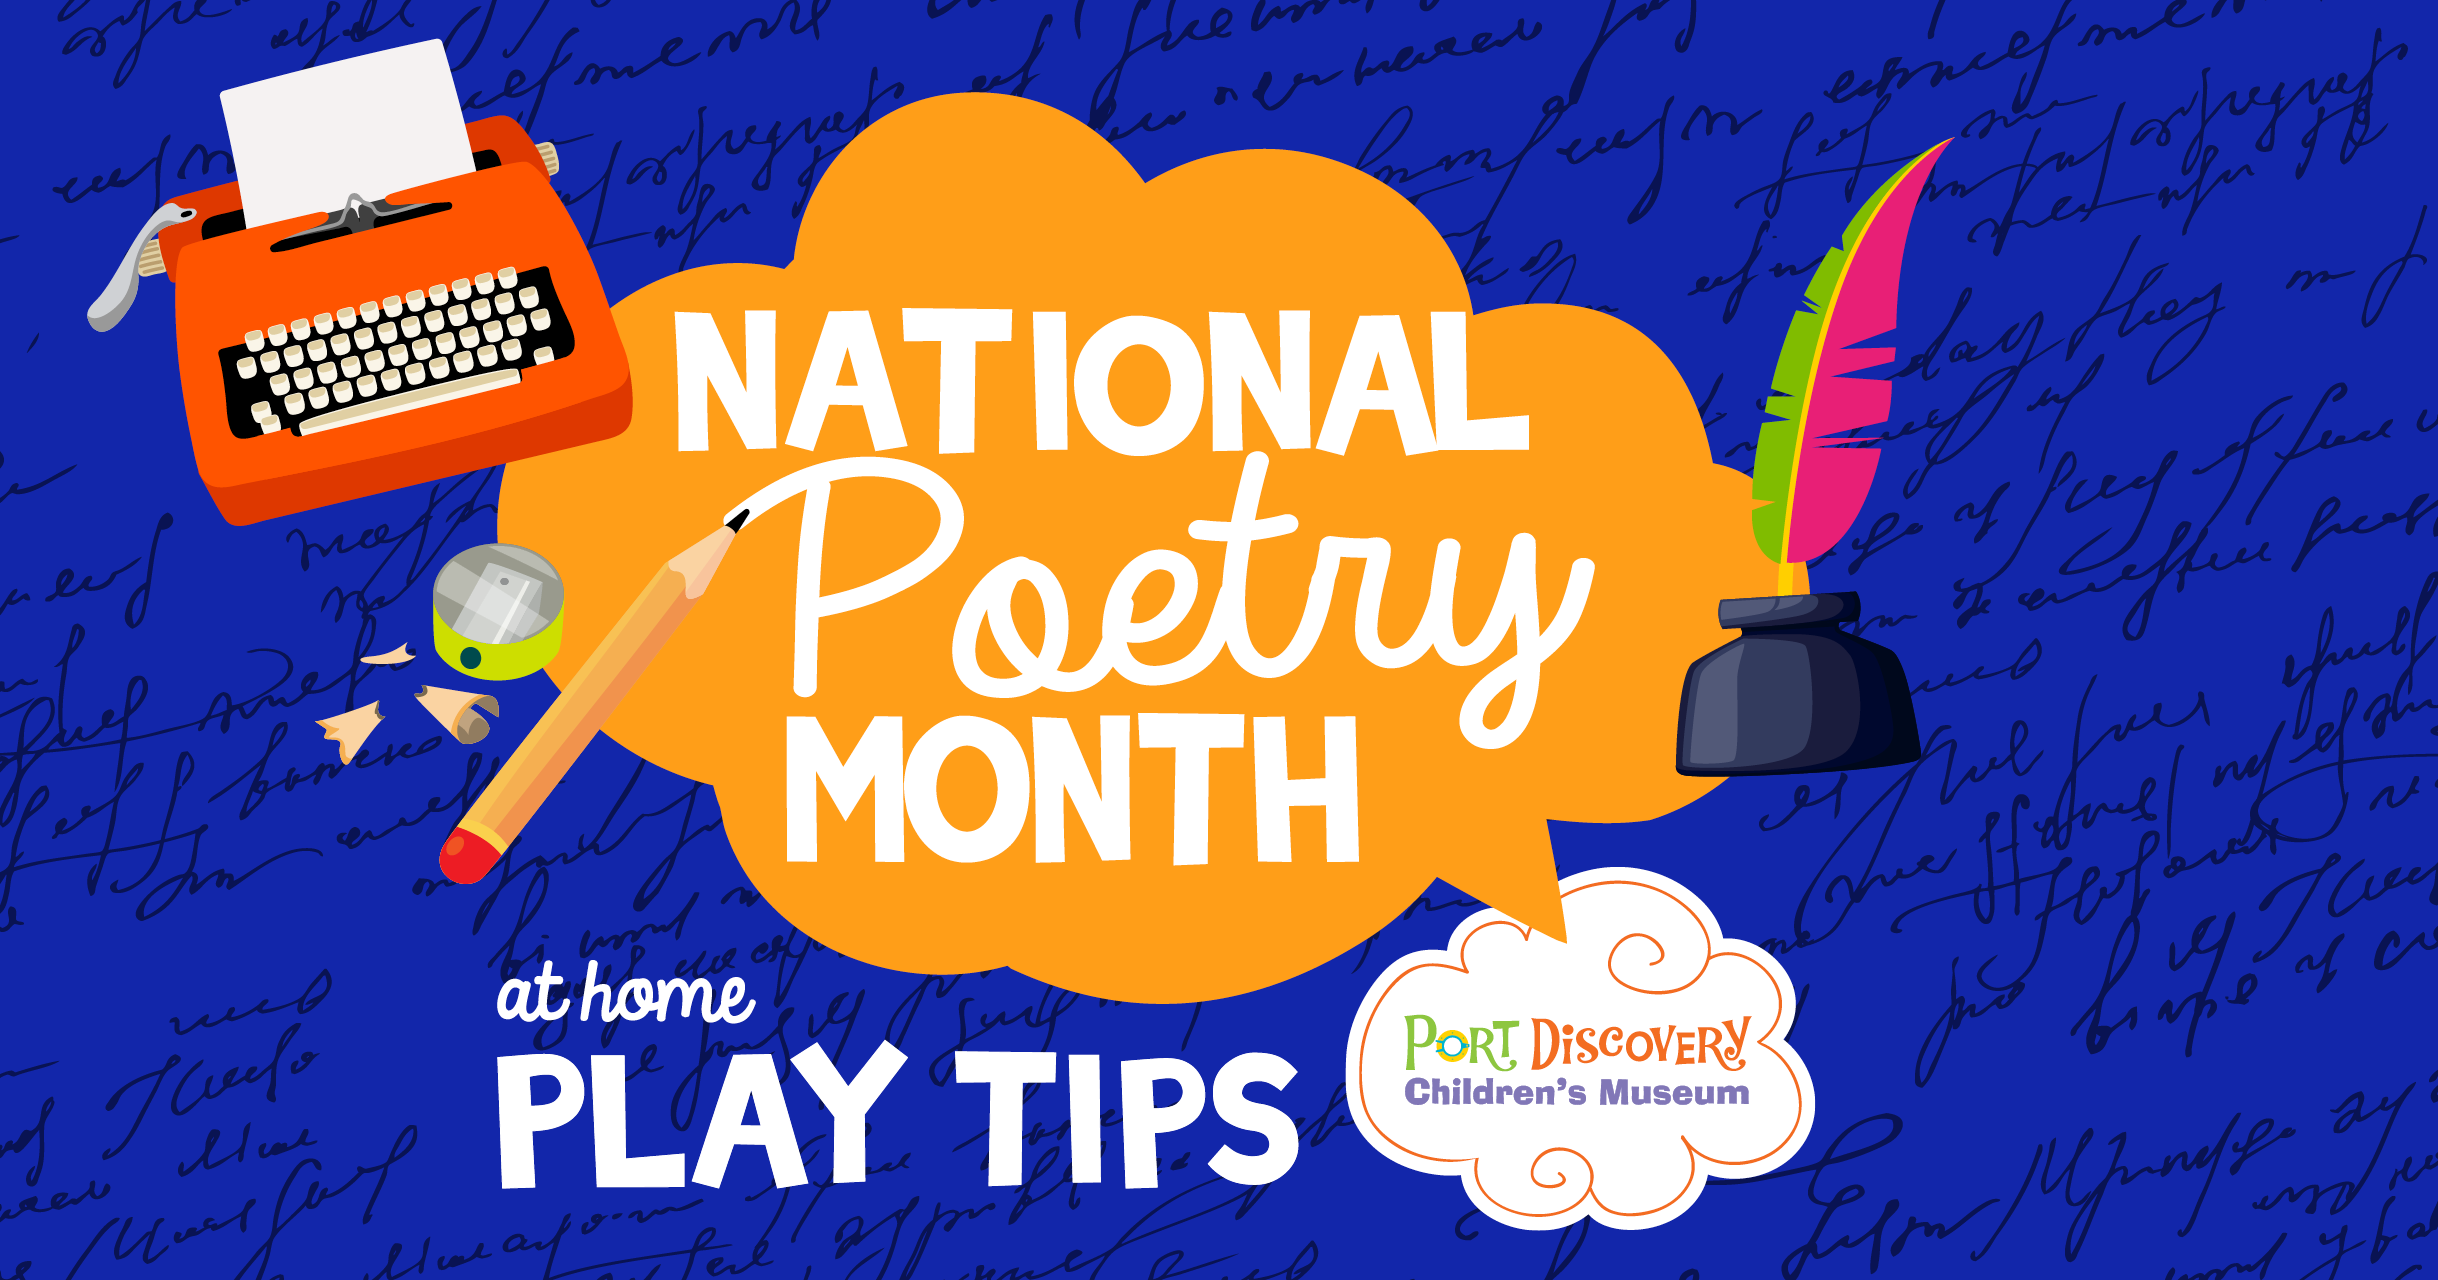 National Poetry Month At Home Play Tips